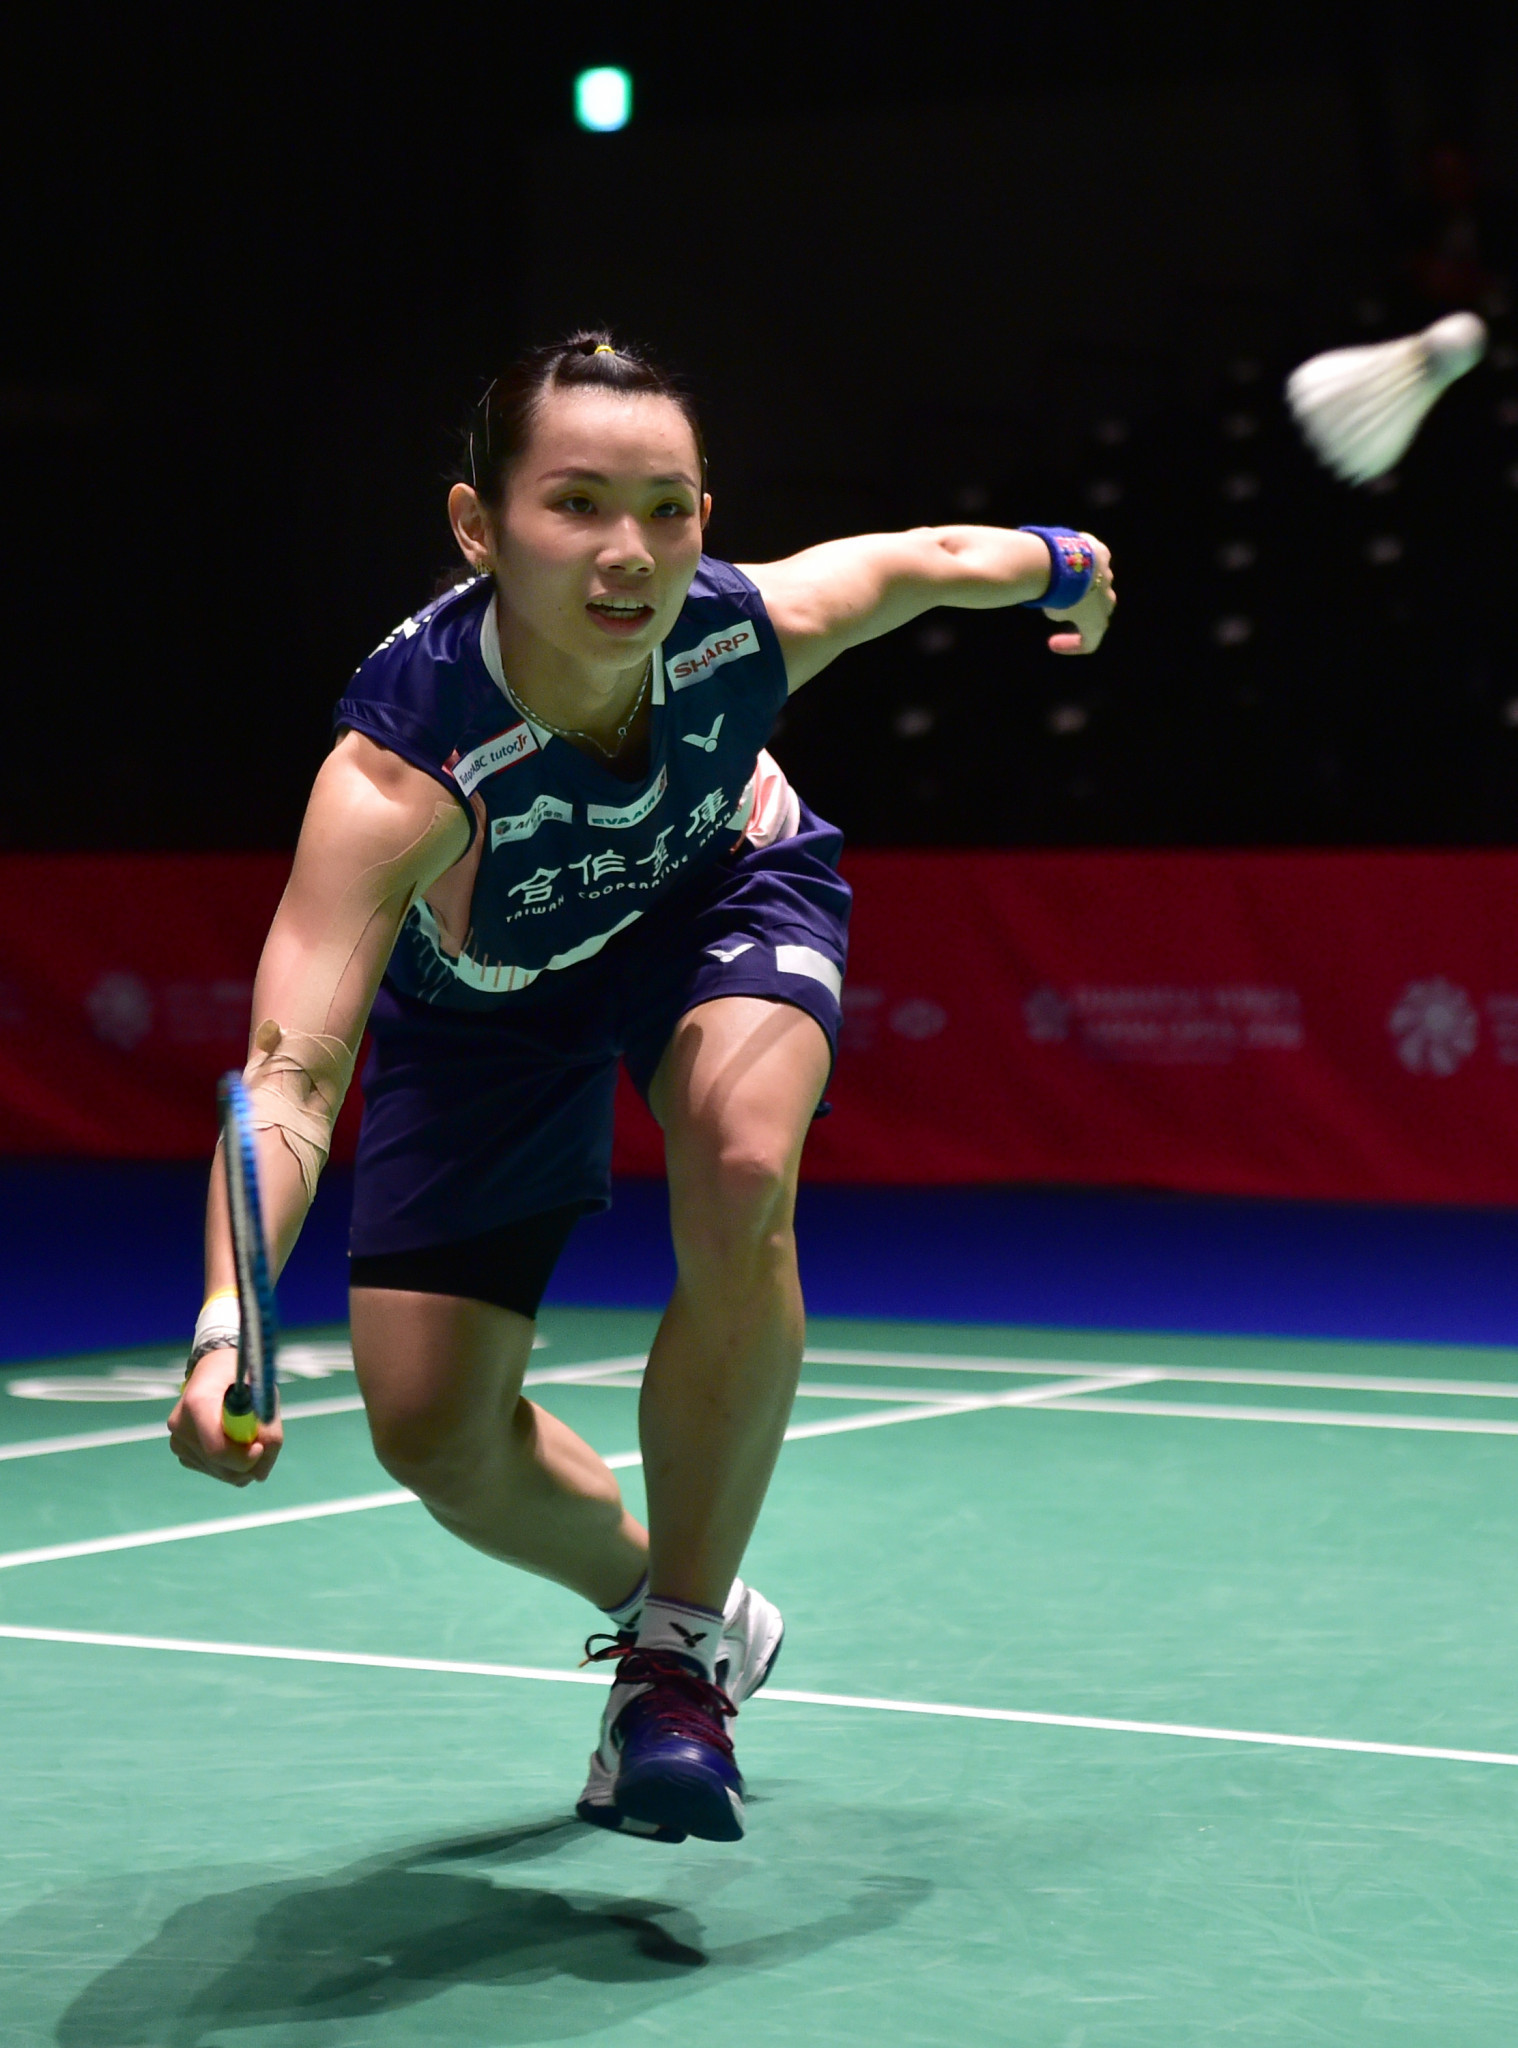 Top seed Tai Tzu-ying remains on course for glory in the women's singles event ©Getty Images